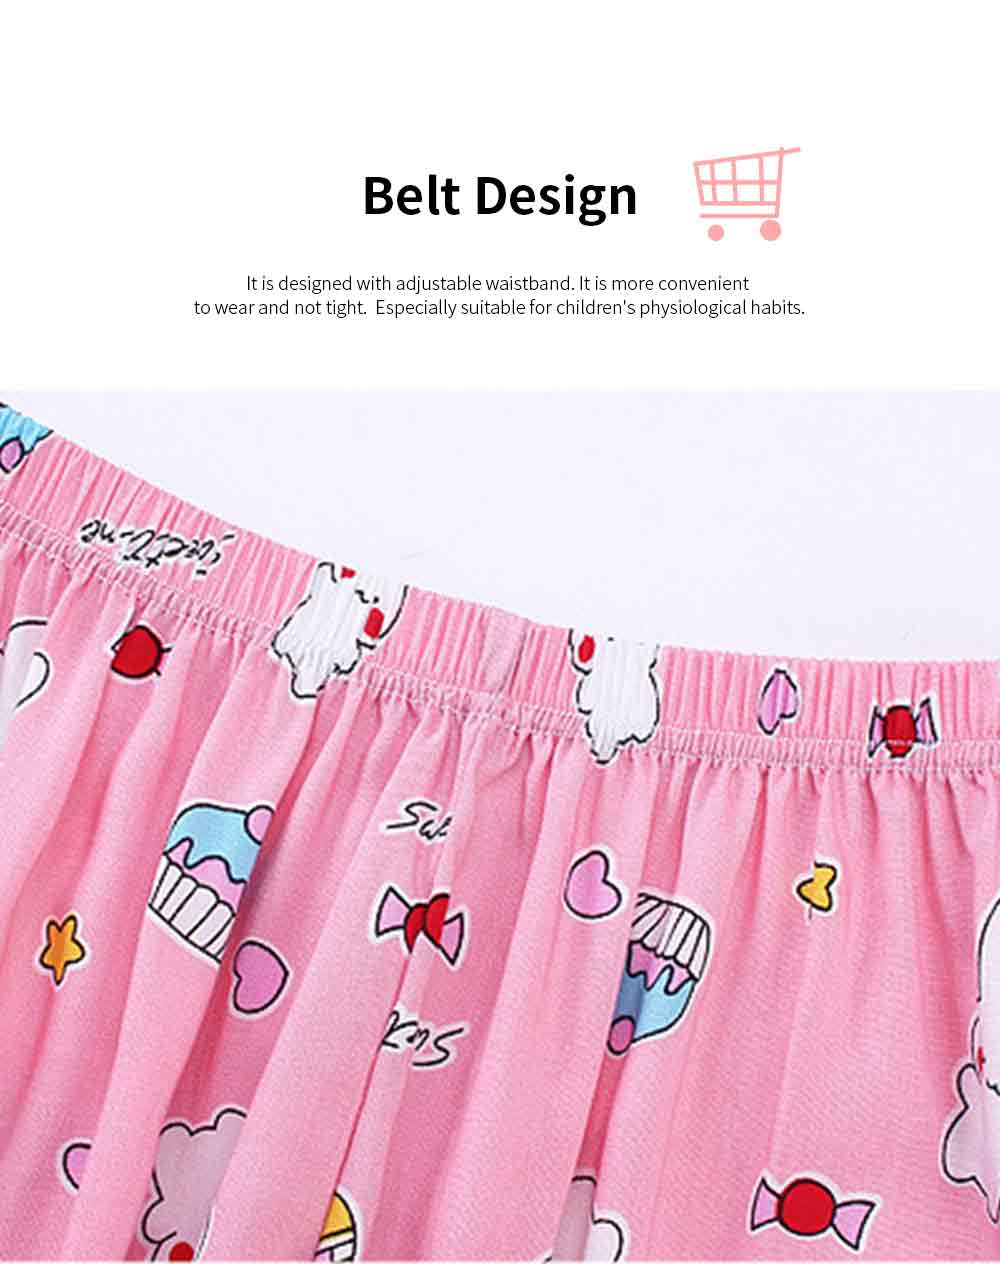 Boy Pants Silk Stylish Design Anti-Mosquito Elastic Cotton for Children Summer Thin Lantern Pants Harem Pants 3